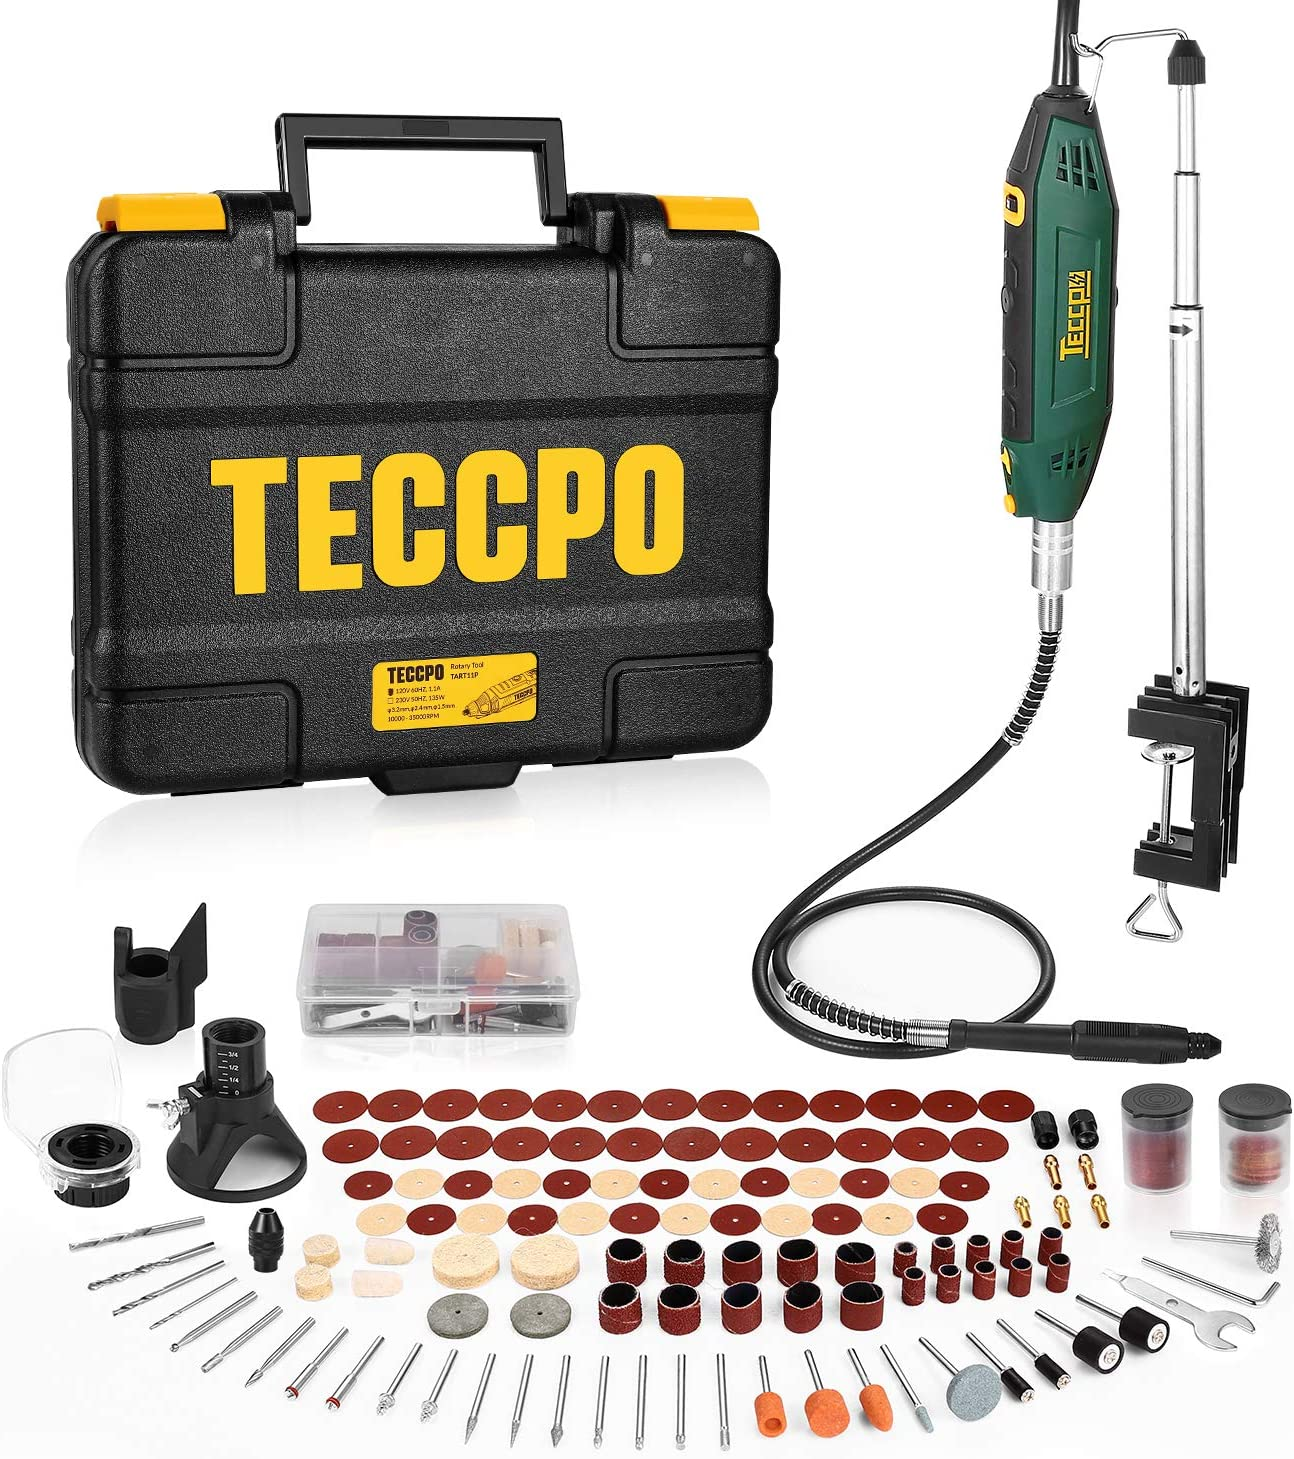 Upgraded Rotary Tool TECCPO 200W, 10000-40000RPM, 6 Variable Speed with Flex shaft, Universal Keyless Chuck, Sharpening Guide, 120 Accessories Ideal for Crafting Project and DIY